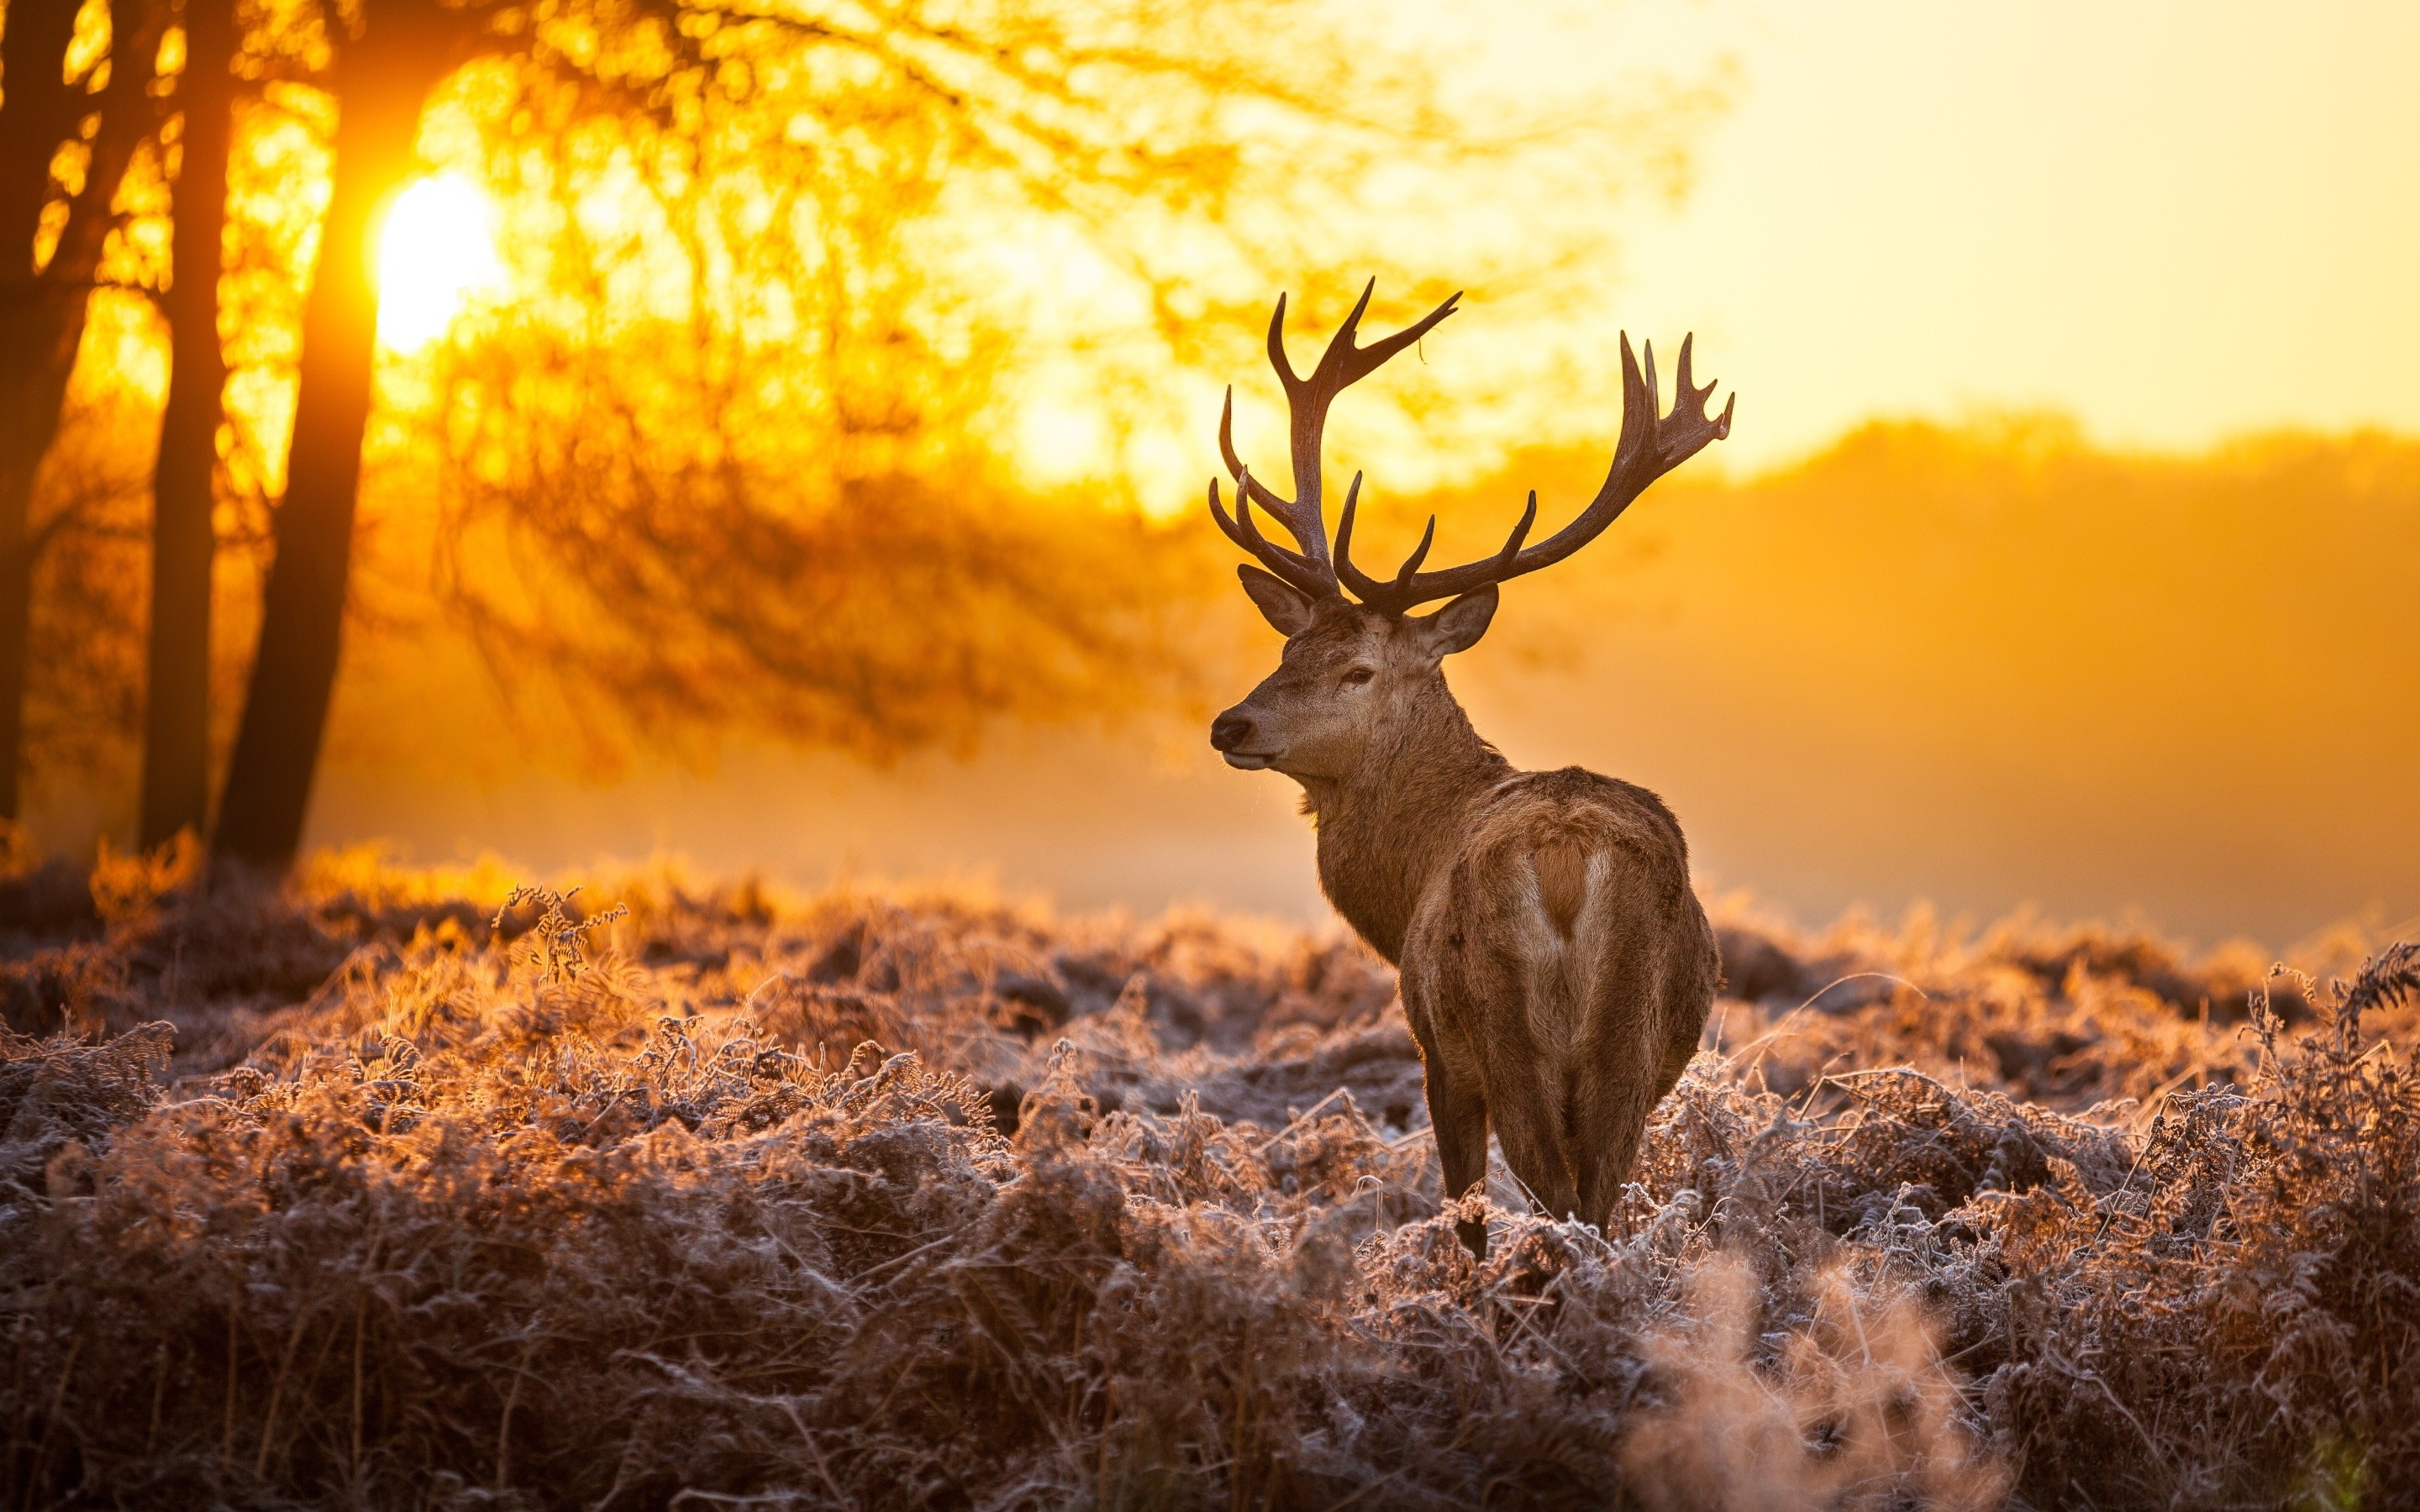 Deer Backgrounds For Iphone: Deer Hunting Wallpaper For Computer (57+ Images